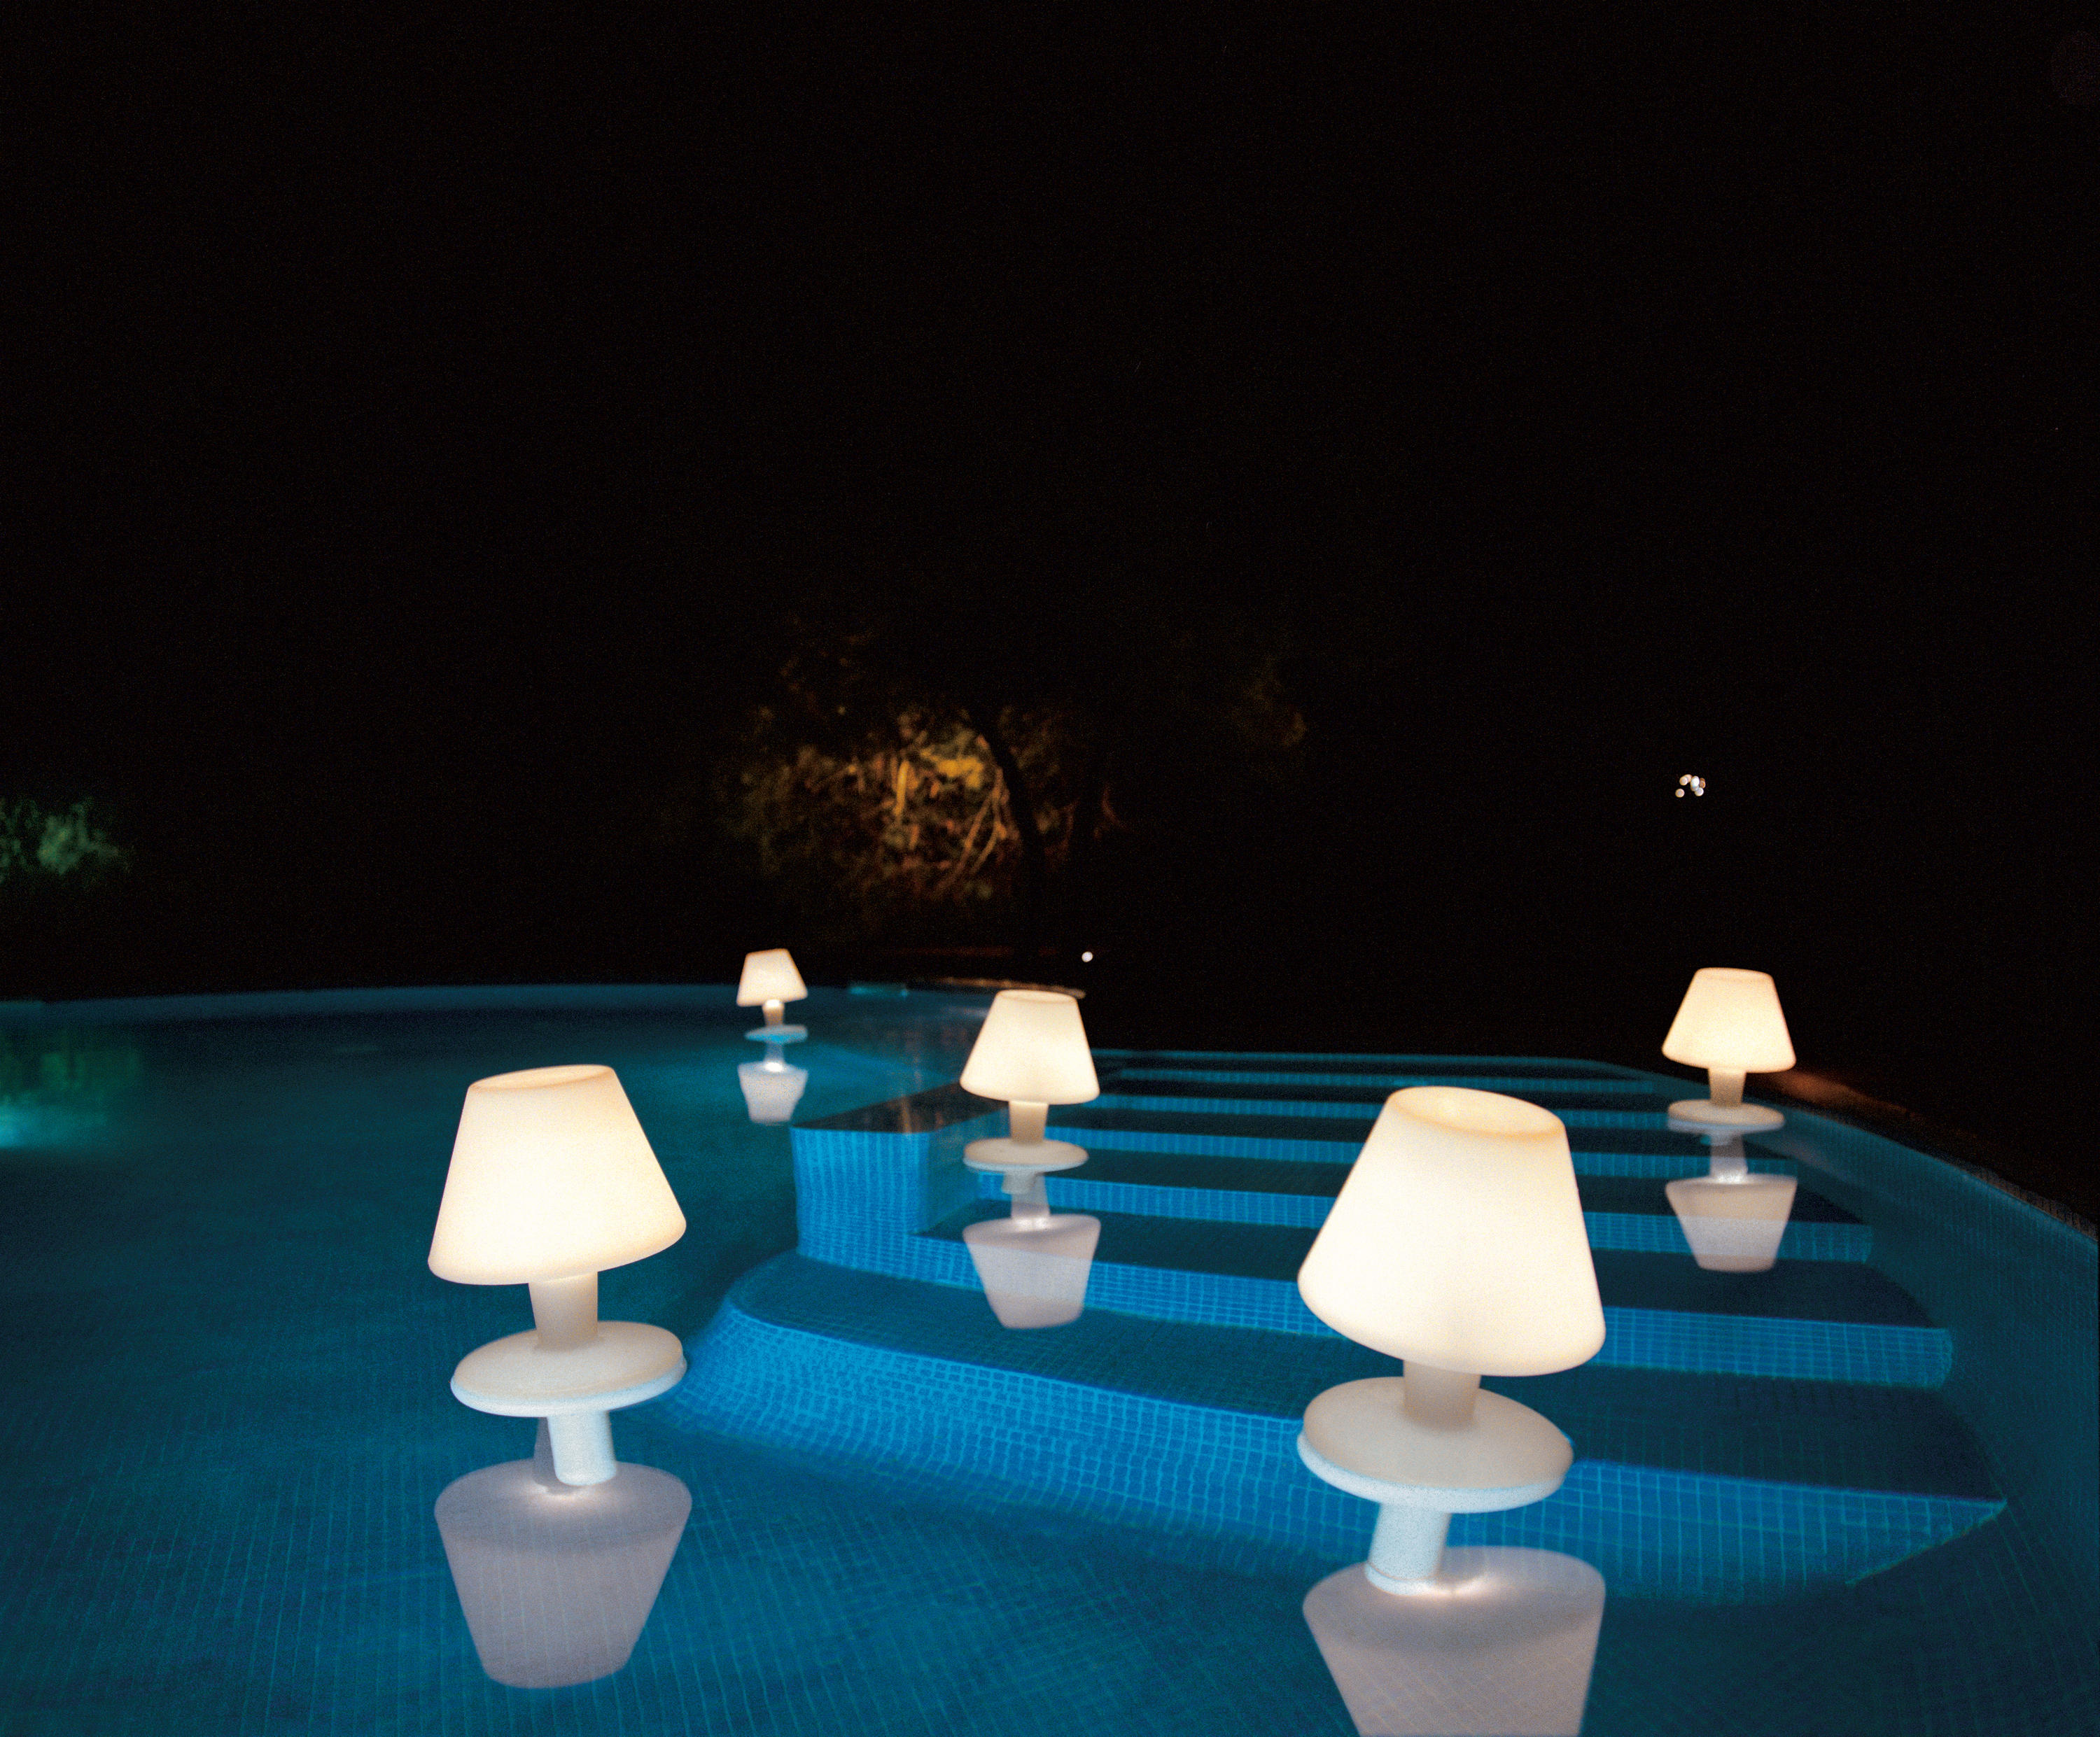 Waterproof pool lamp cordless outdoor lights from metalarte waterproof pool lamp by metalarte cordless outdoor lights aloadofball Gallery